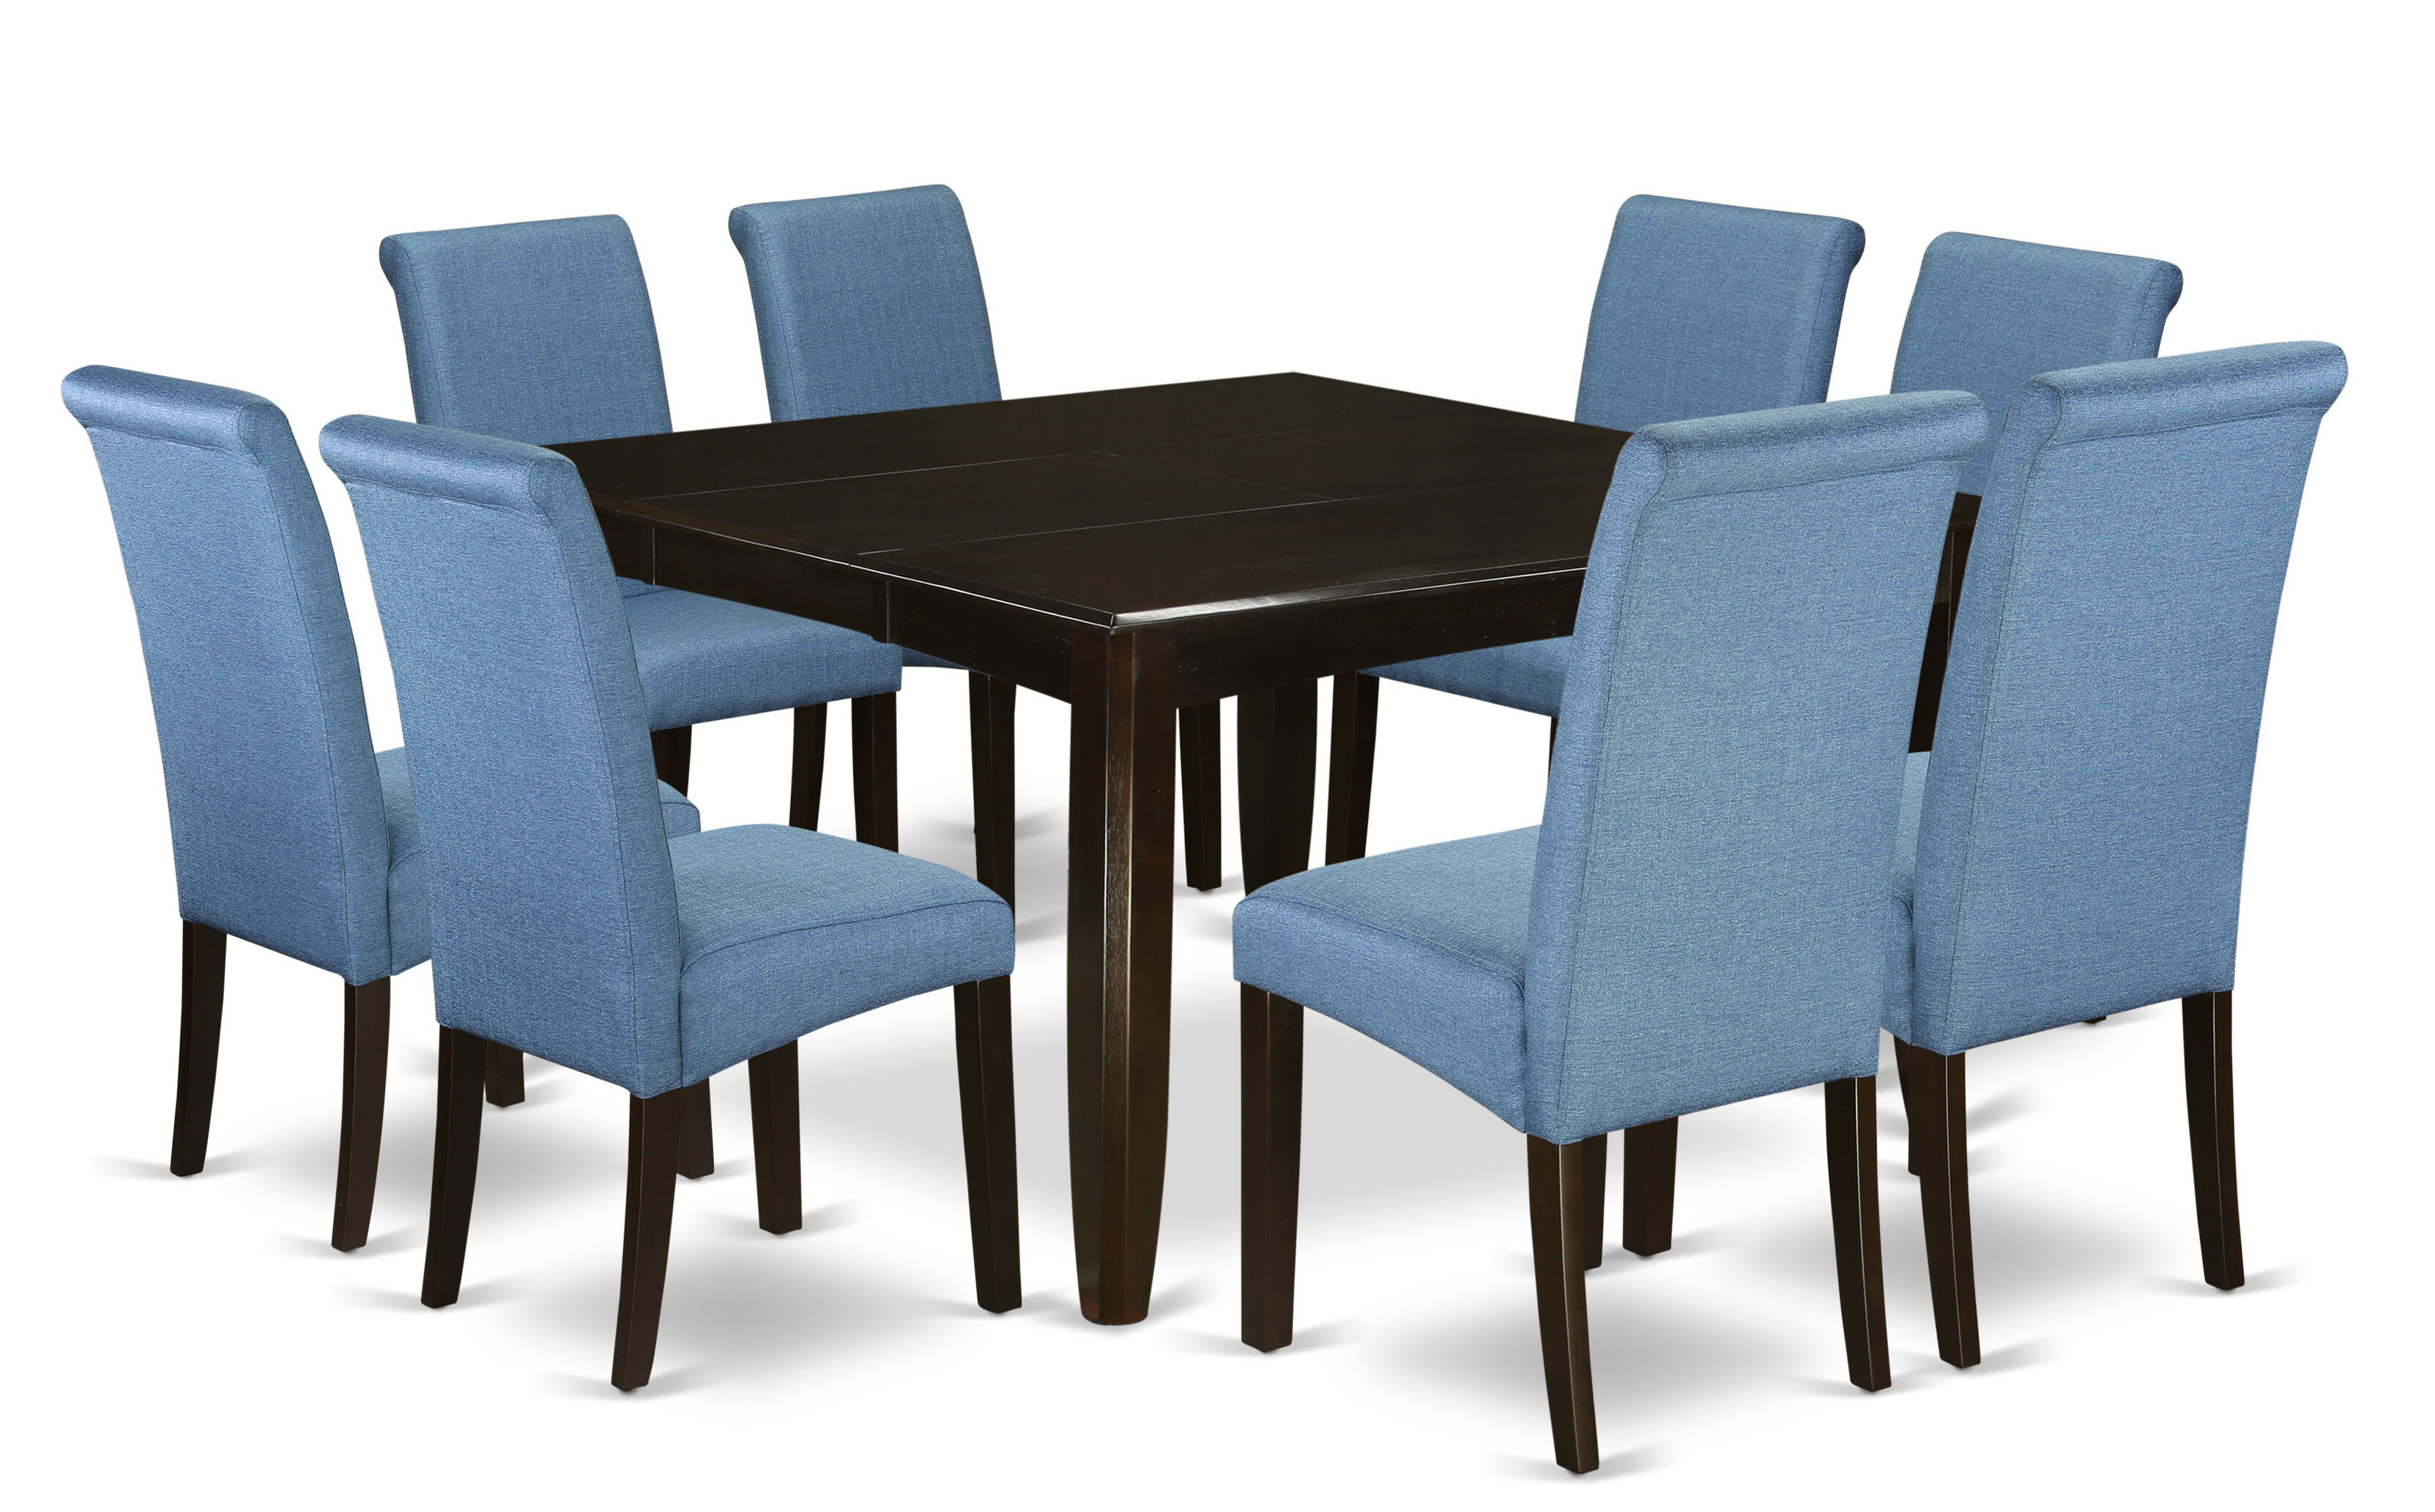 Joselyn Square Kitchen Table 9 Piece Extendable Solid Wood Dining Set